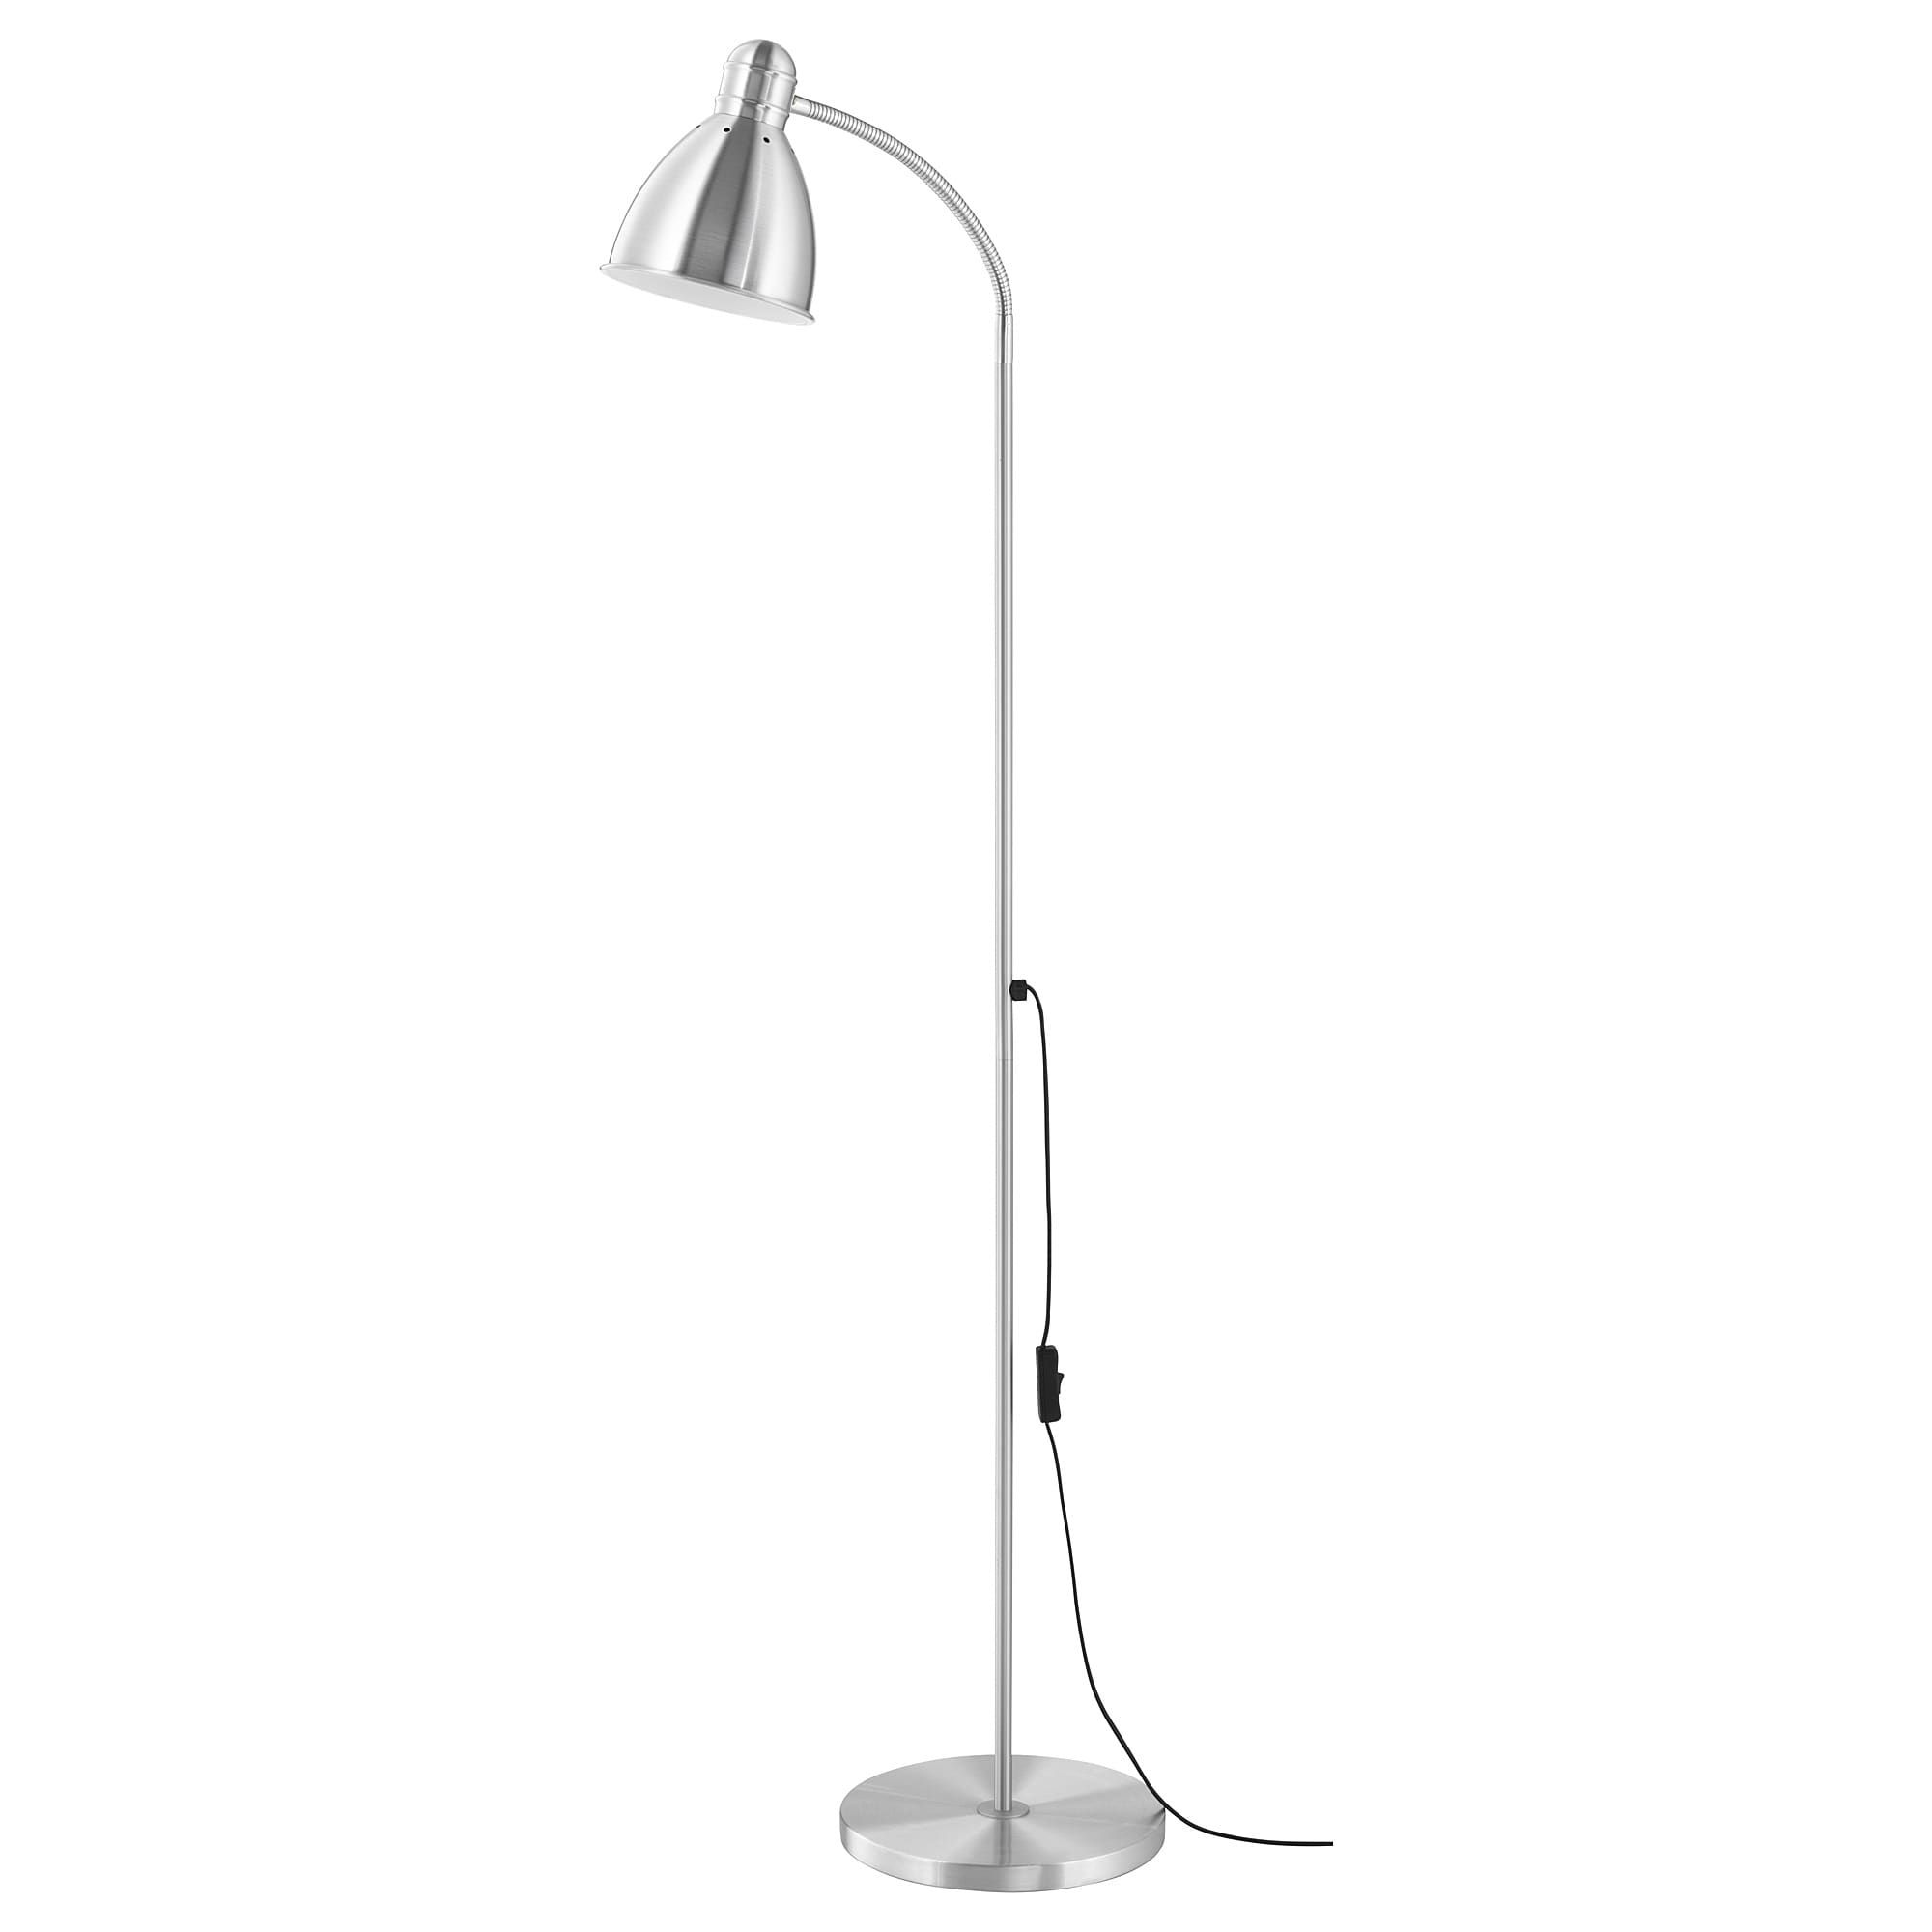 NYFORS Staande lamp in 2020 | Floor